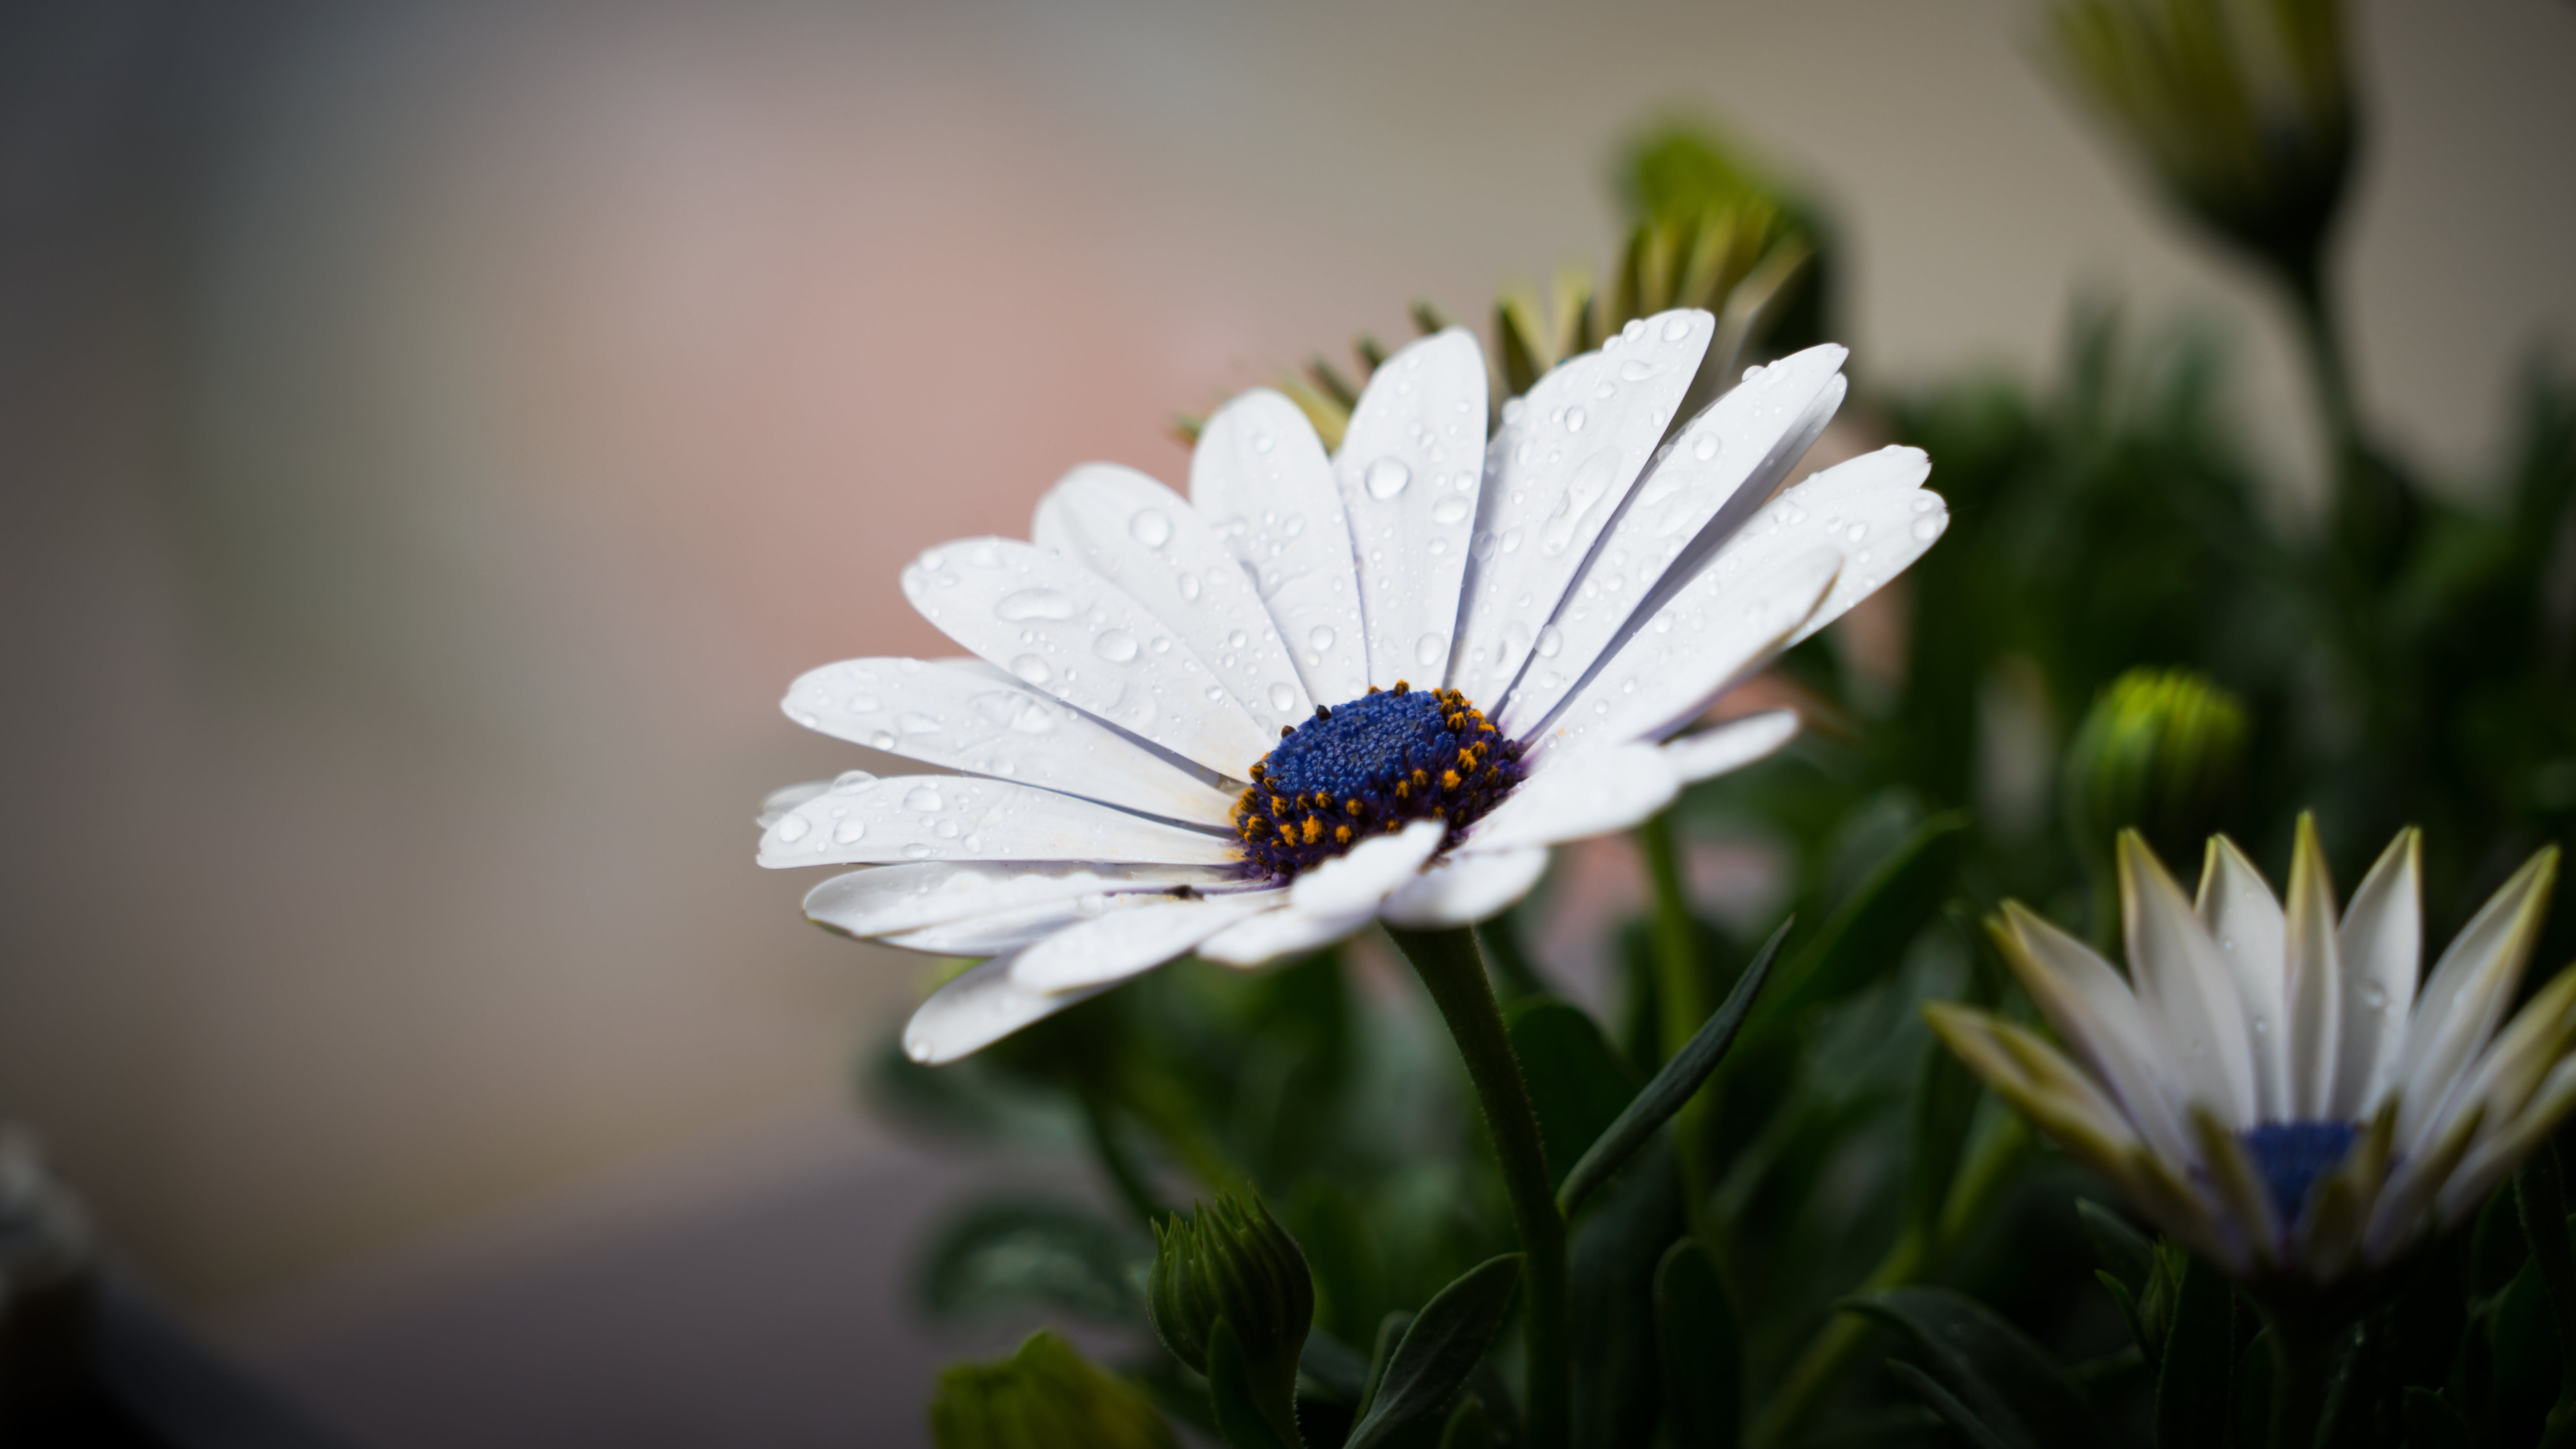 Selective Focus Photo of White Osteospermum Flower in Bloom